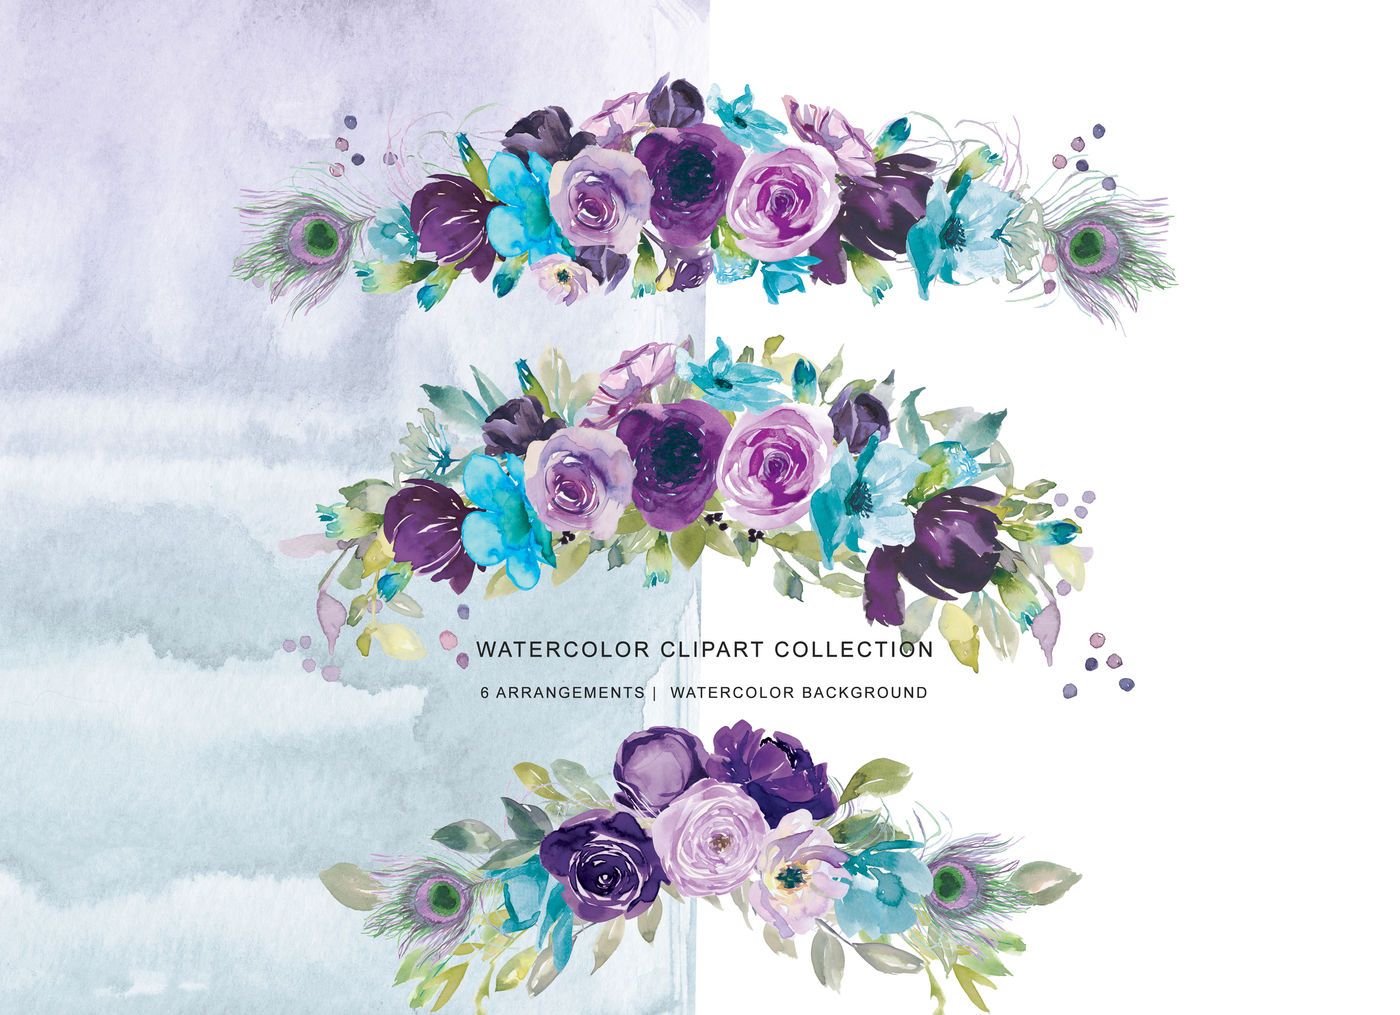 Watercolor Purple Lilac And Turquoise Blue Floral Arrangements Clipart By Patishop Art Thehungryjpeg Com